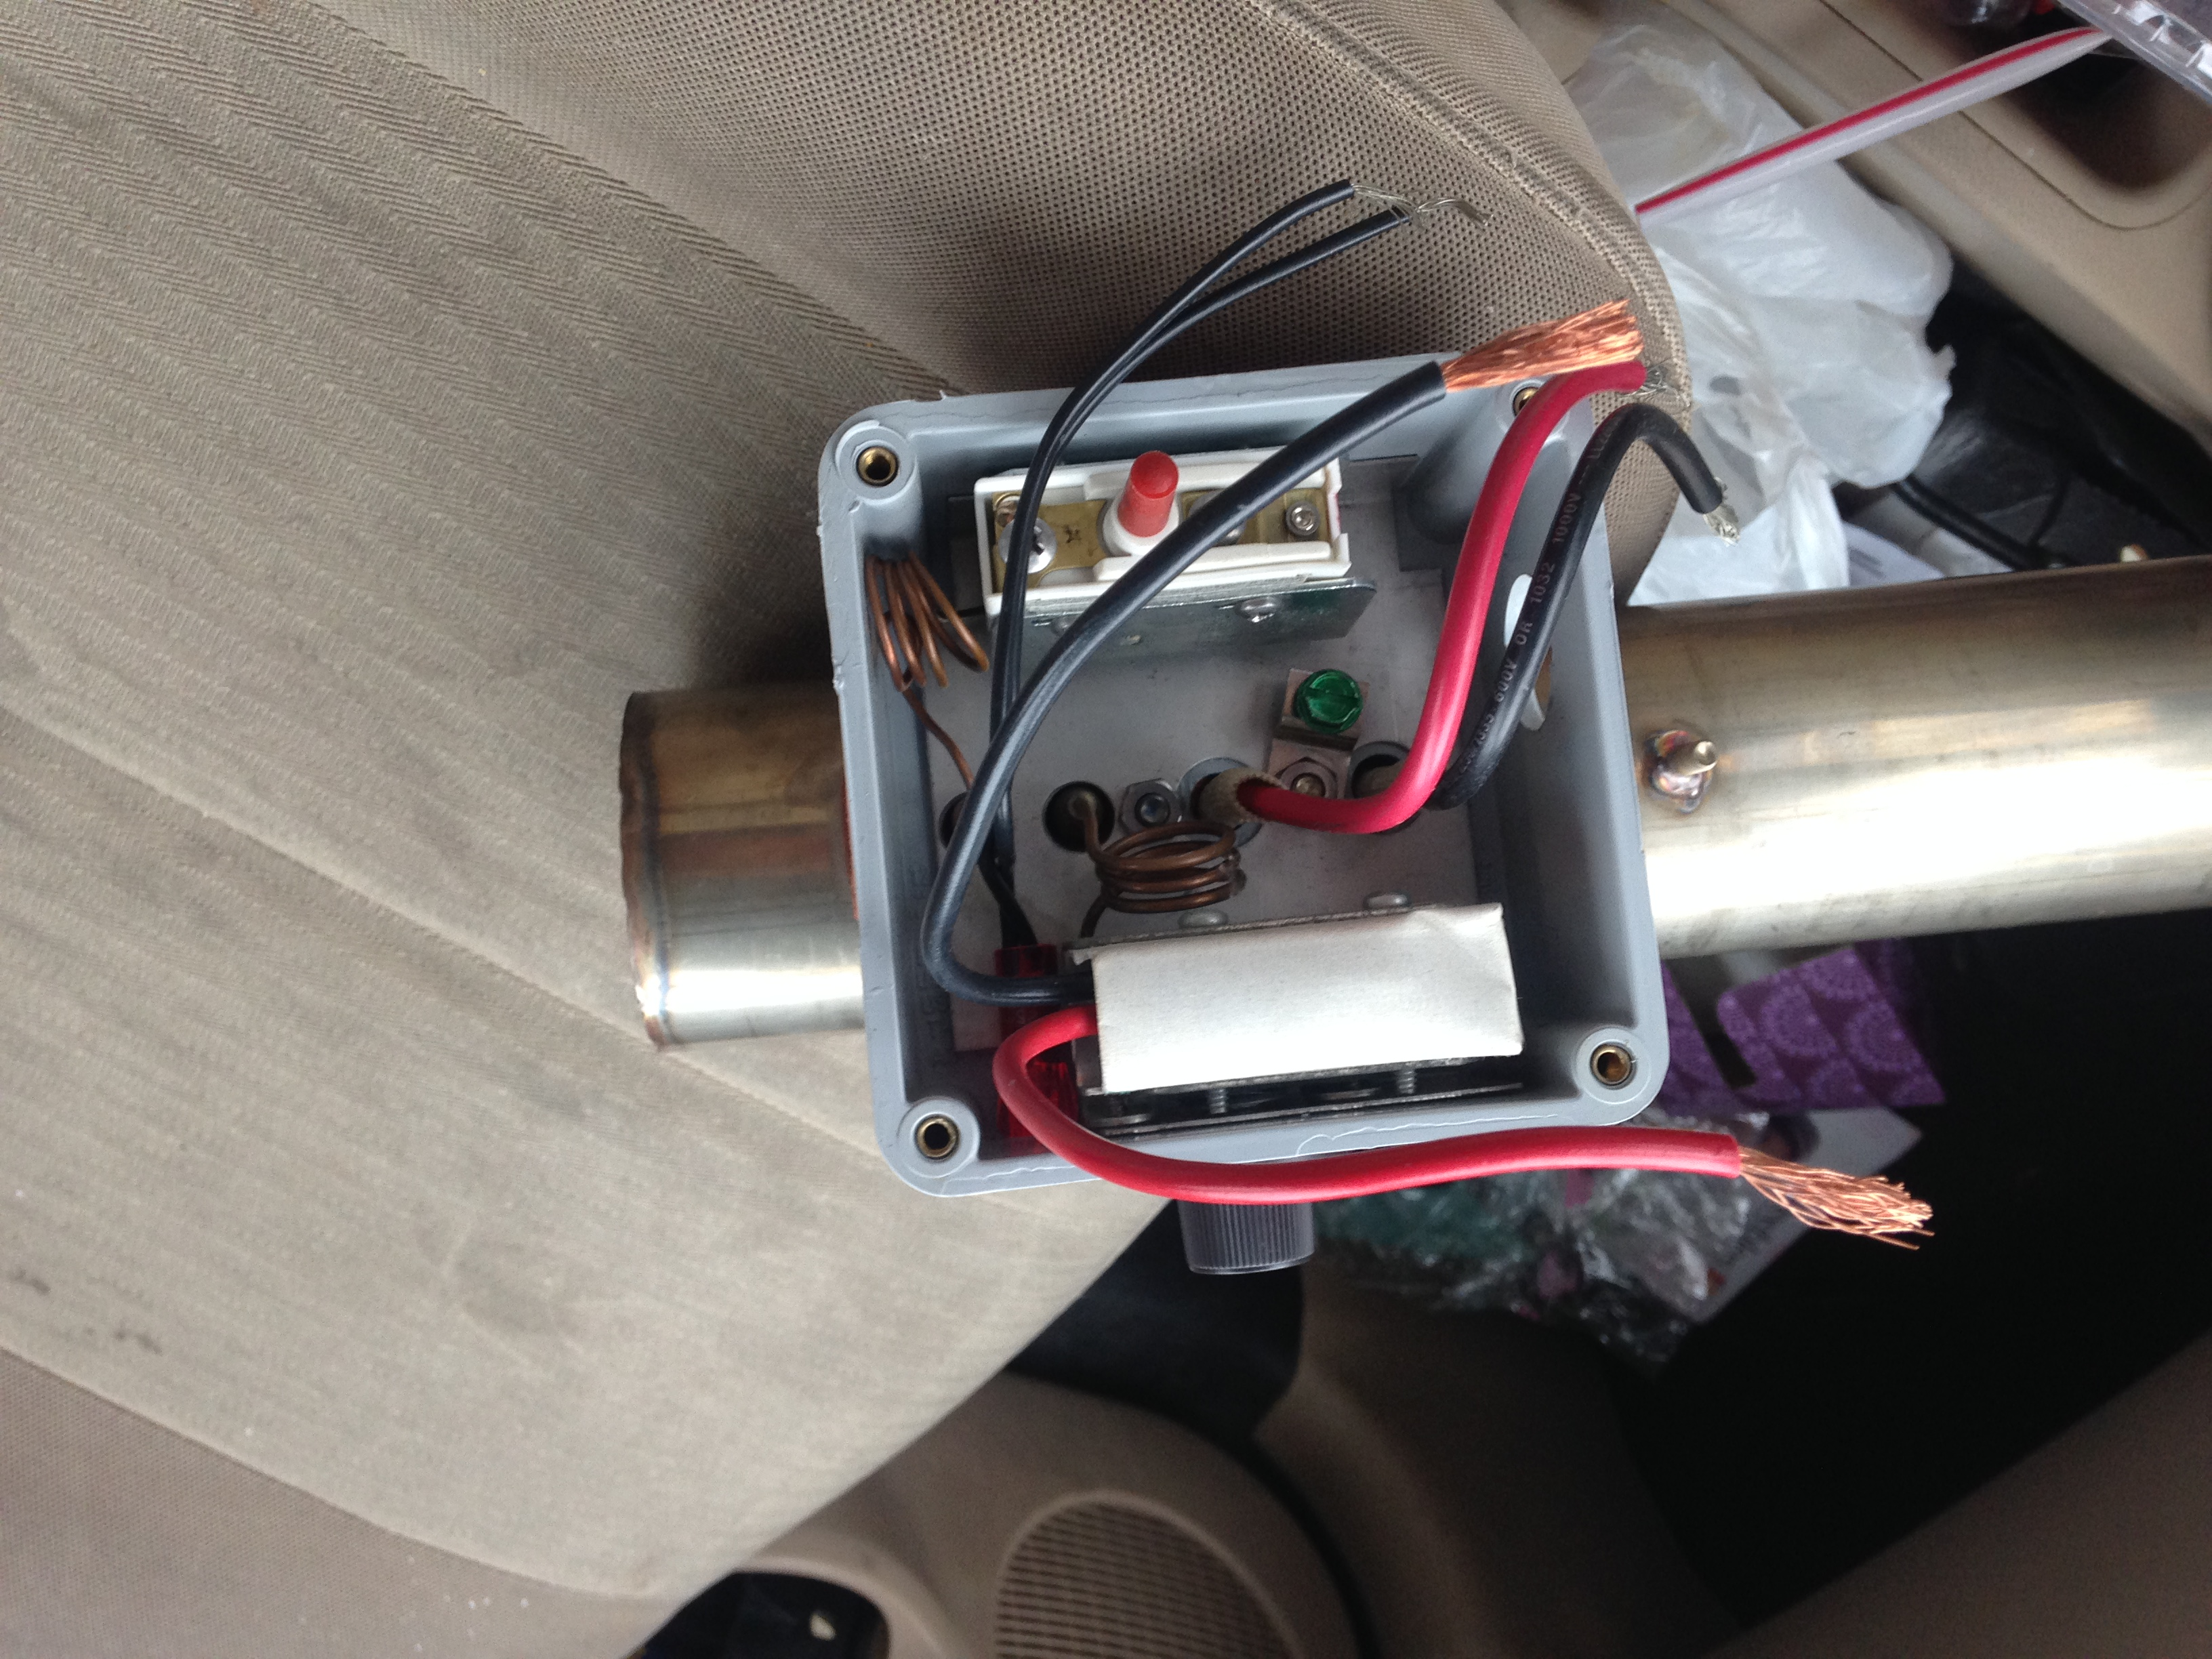 heater Hot Tub Wiring Instructions on for speakers, through wall panel, diagram disconect,